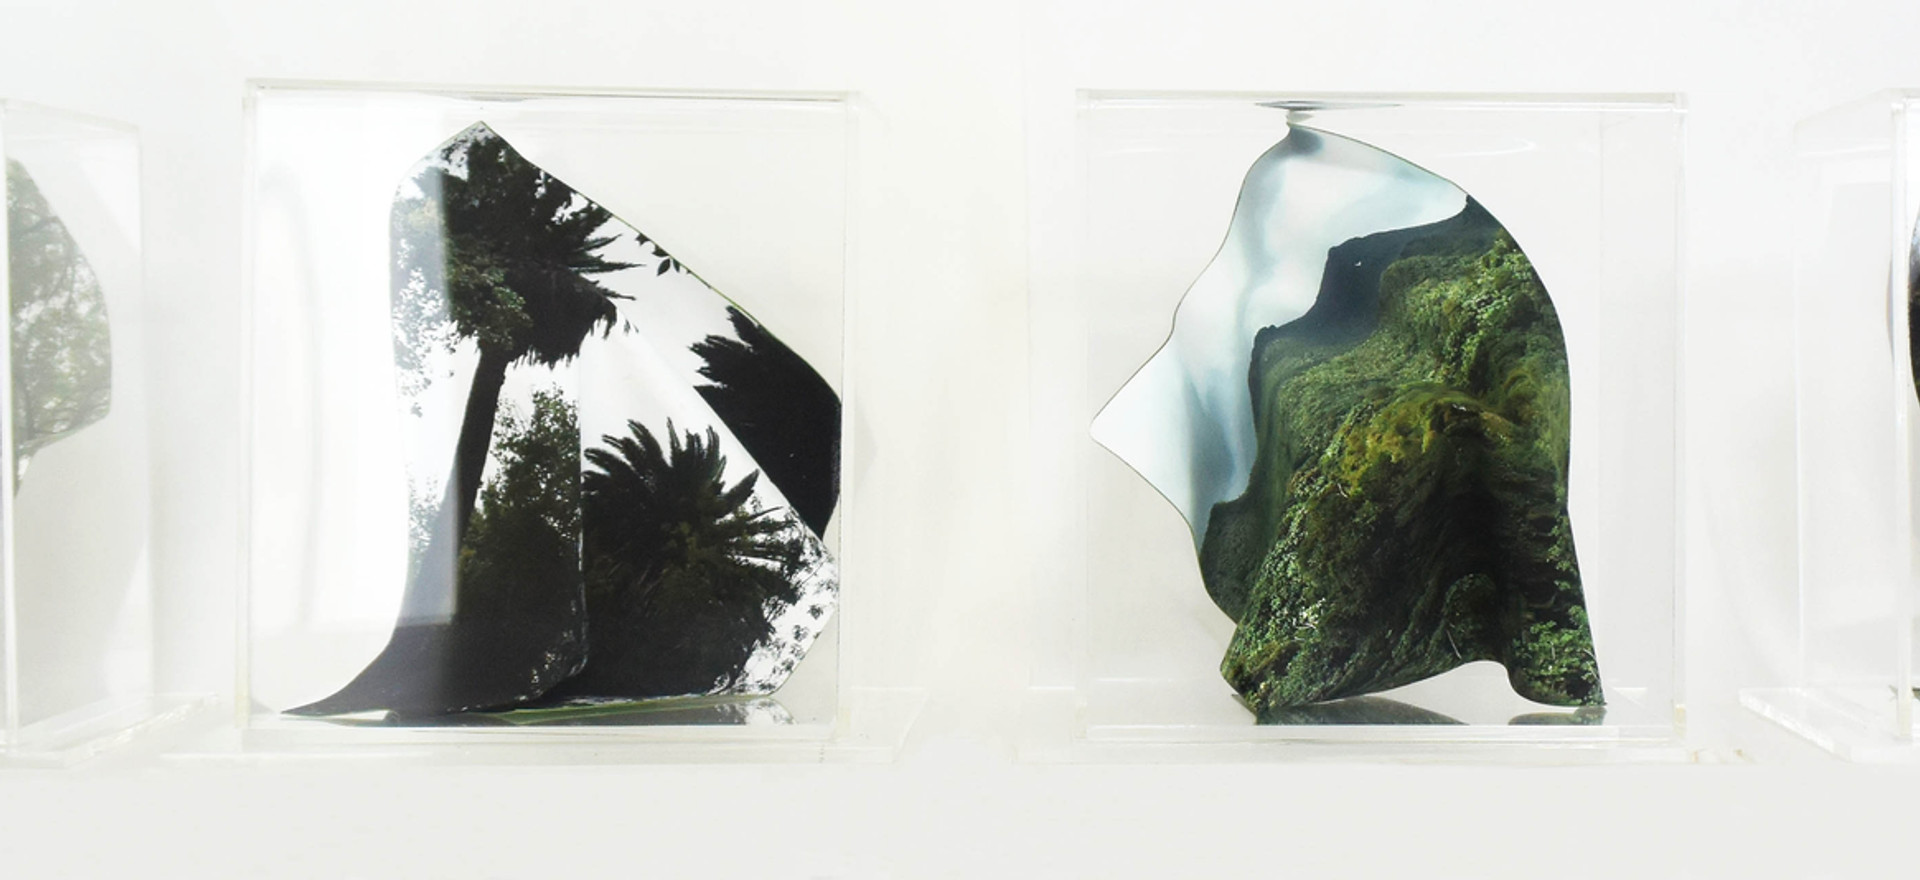 Biodiversity I, II, III, IV, 2018 Photographic sculptures in Hahnemüle Photo Matt Fibre paper with acrylic base and cover. 6.29 x 7.08 x 7.08 inches each. 16 x 18 x 18 cm. each.